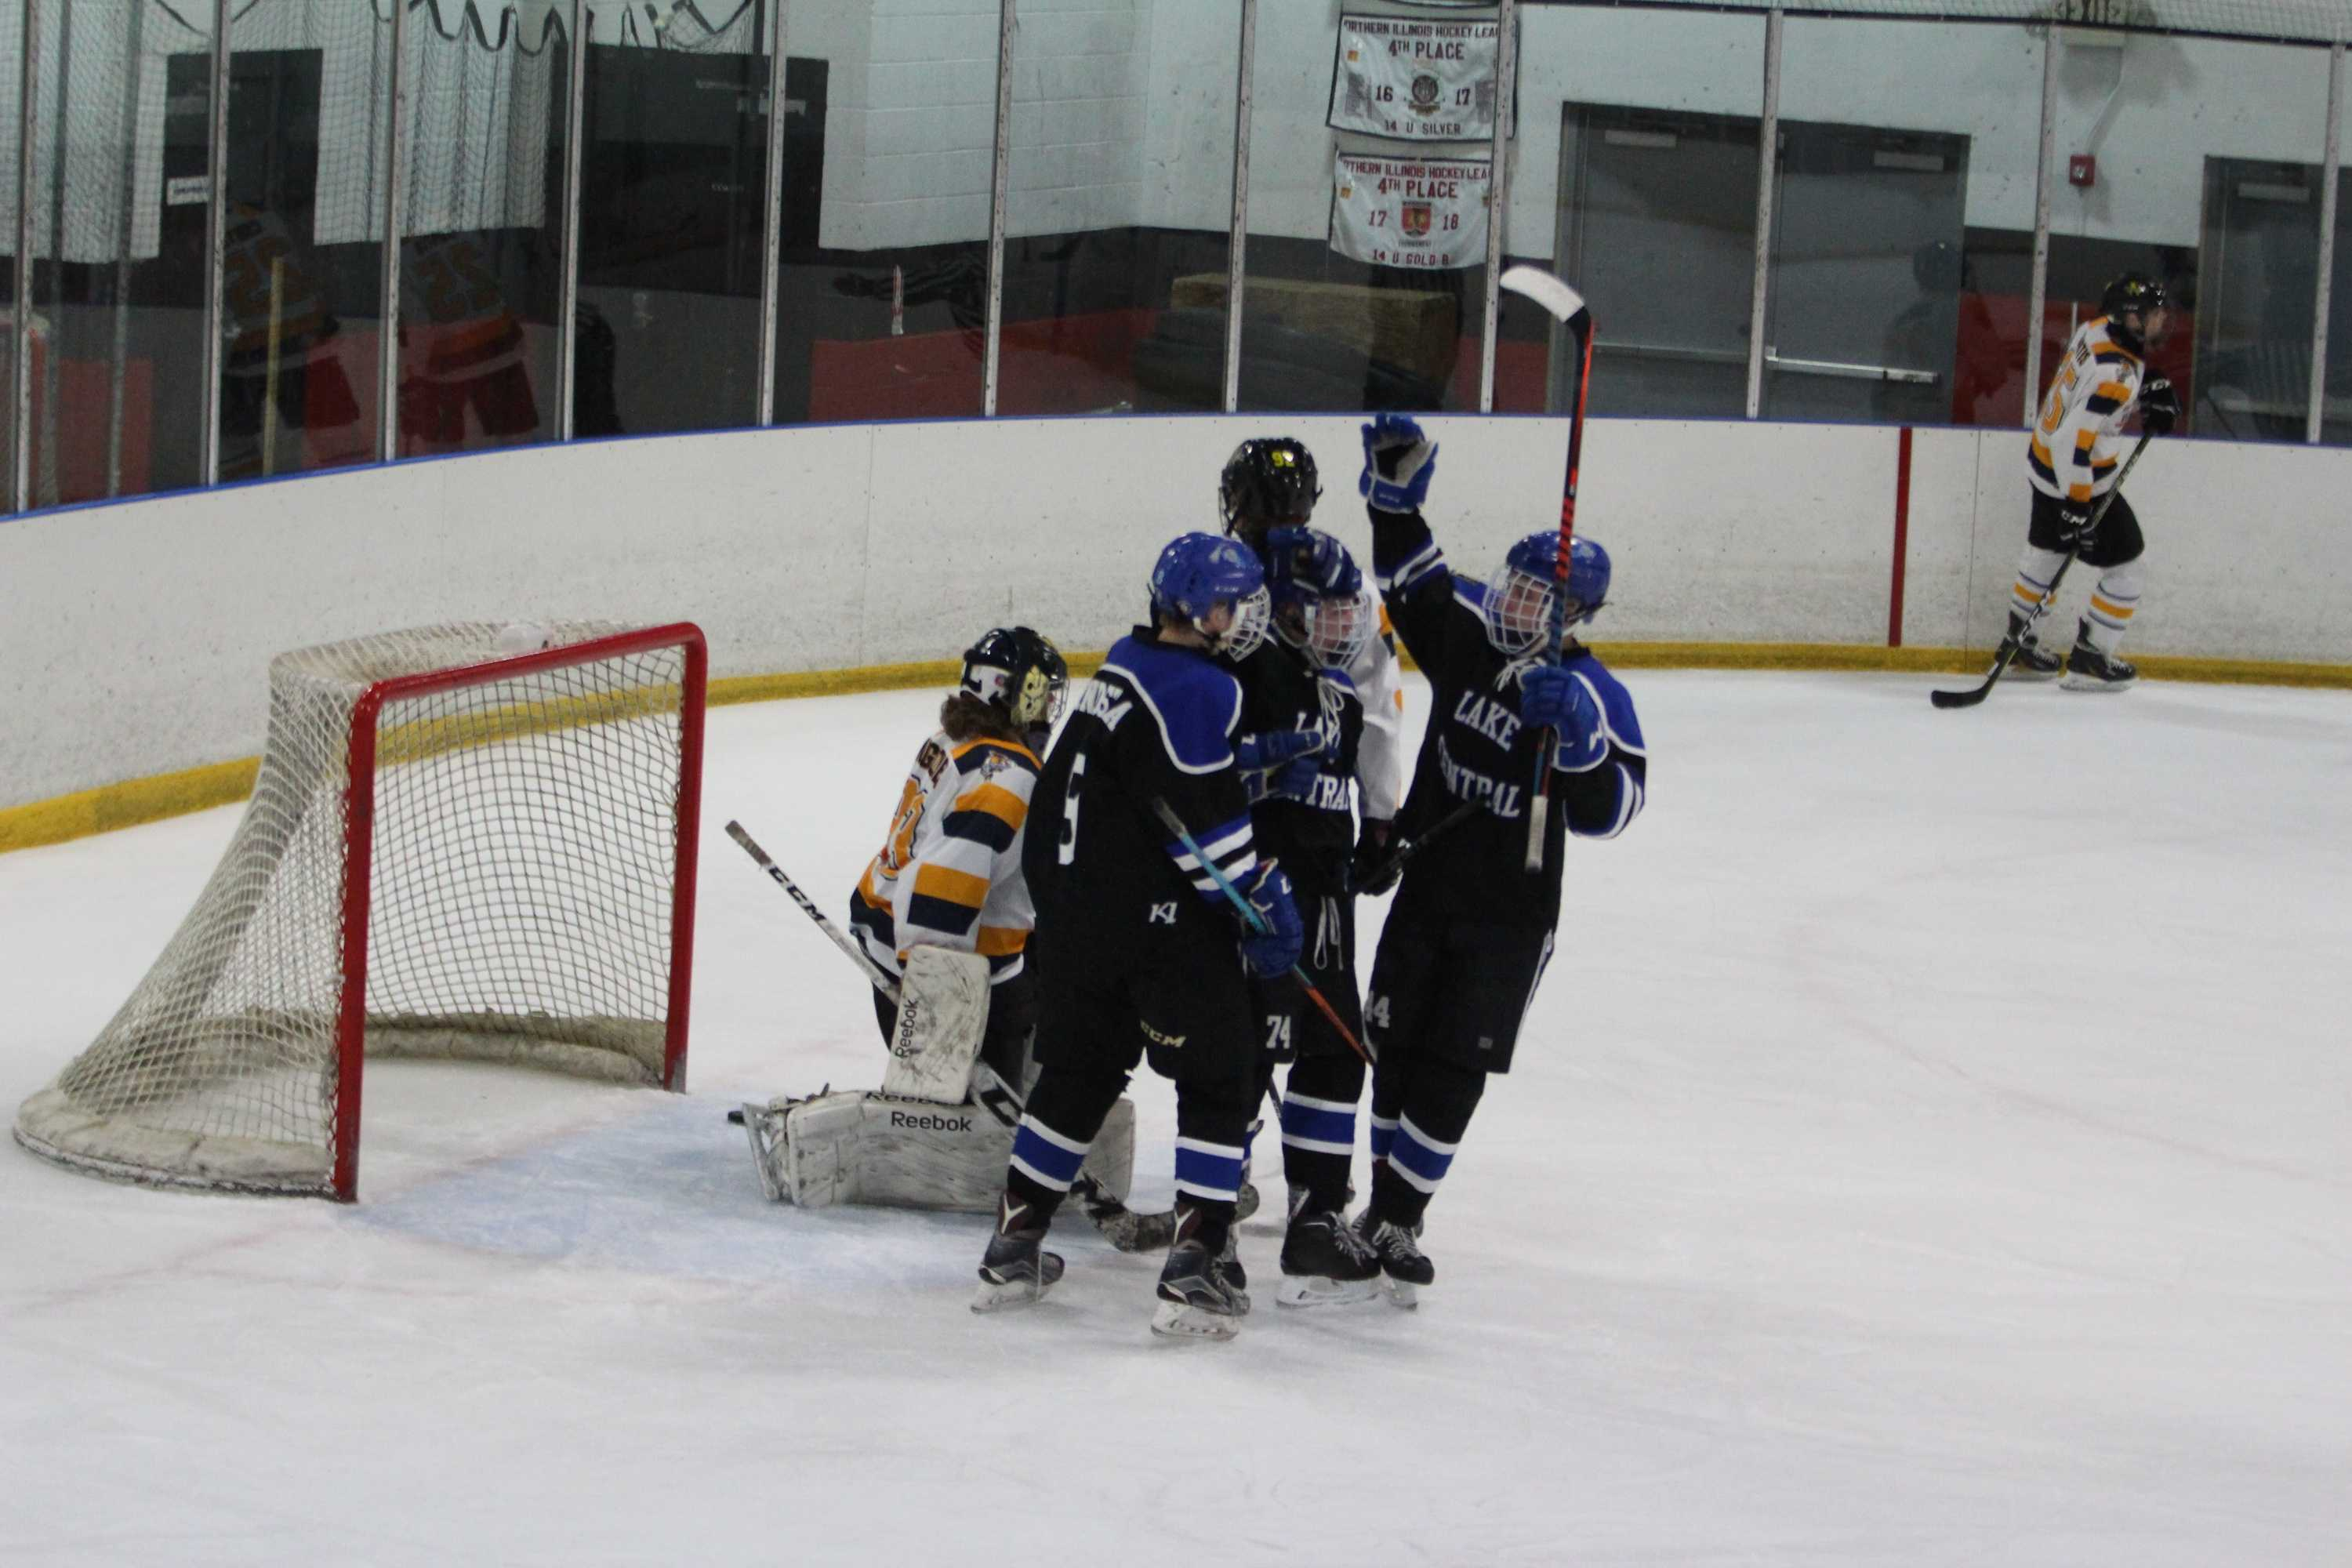 John+Bondi+%2810%29+and+Ryan+Bandstra+%2810%29+congratulate+Kerrick+after+his+first+goal+of+the+night.+Other+players+in+the+student+section+and+on+the+bench+also+cheered.+